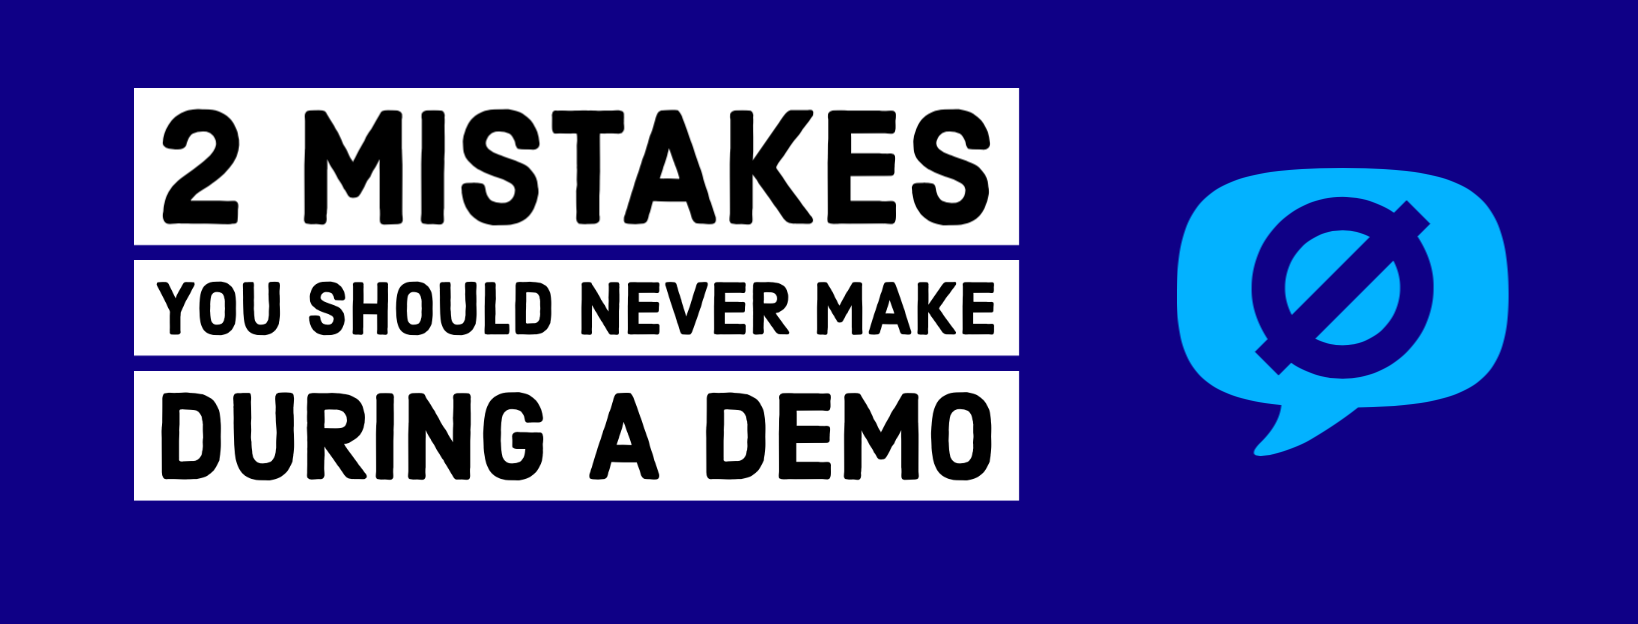 2 mistakes you shouldn't make on a demo